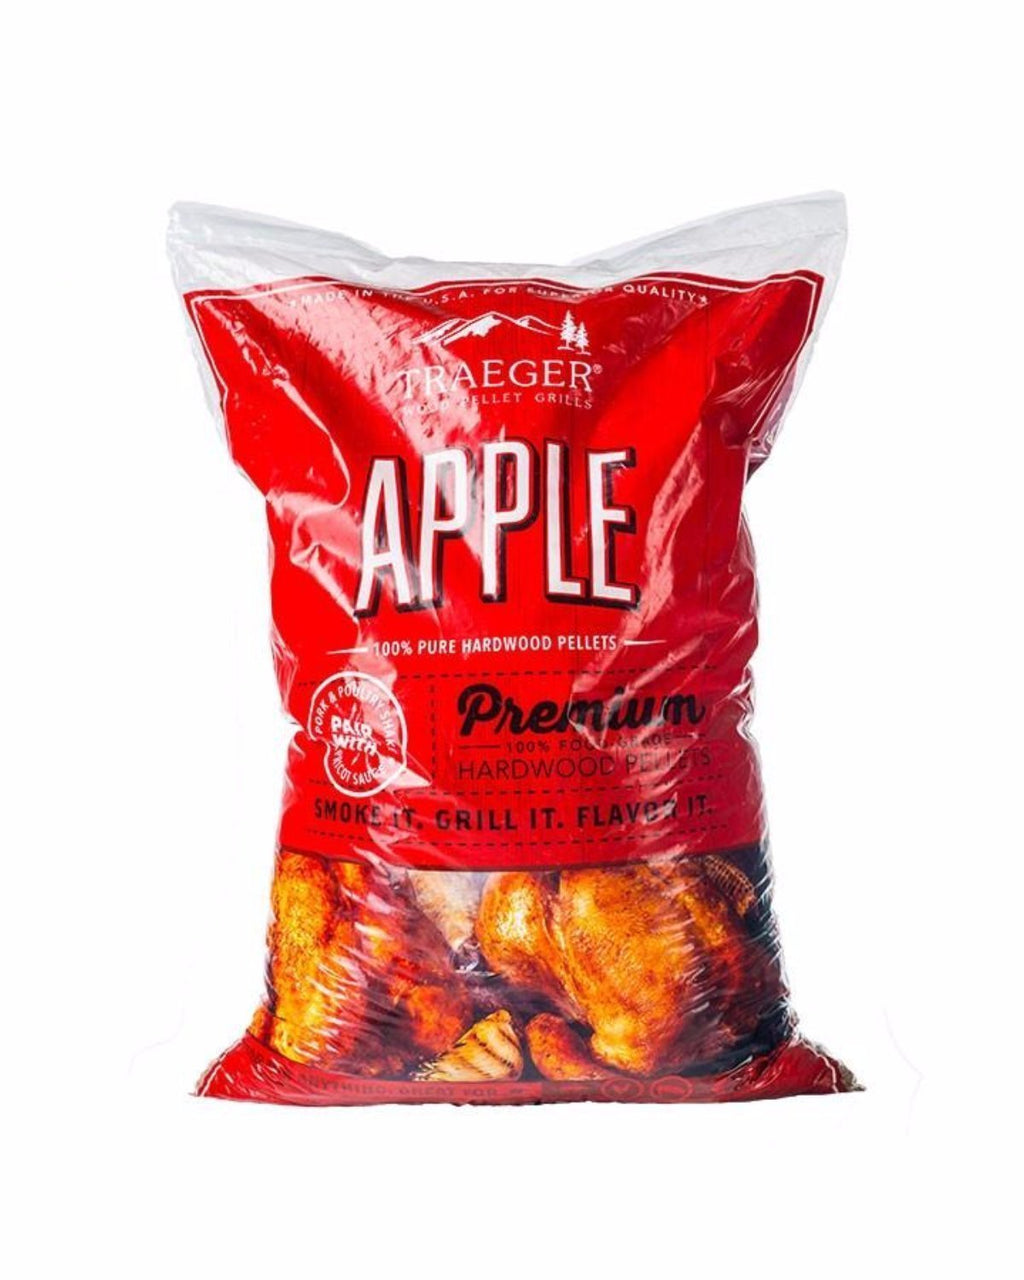 Traeger Apple Pellets 9Kg Bag, BBQ Accessories, Traeger